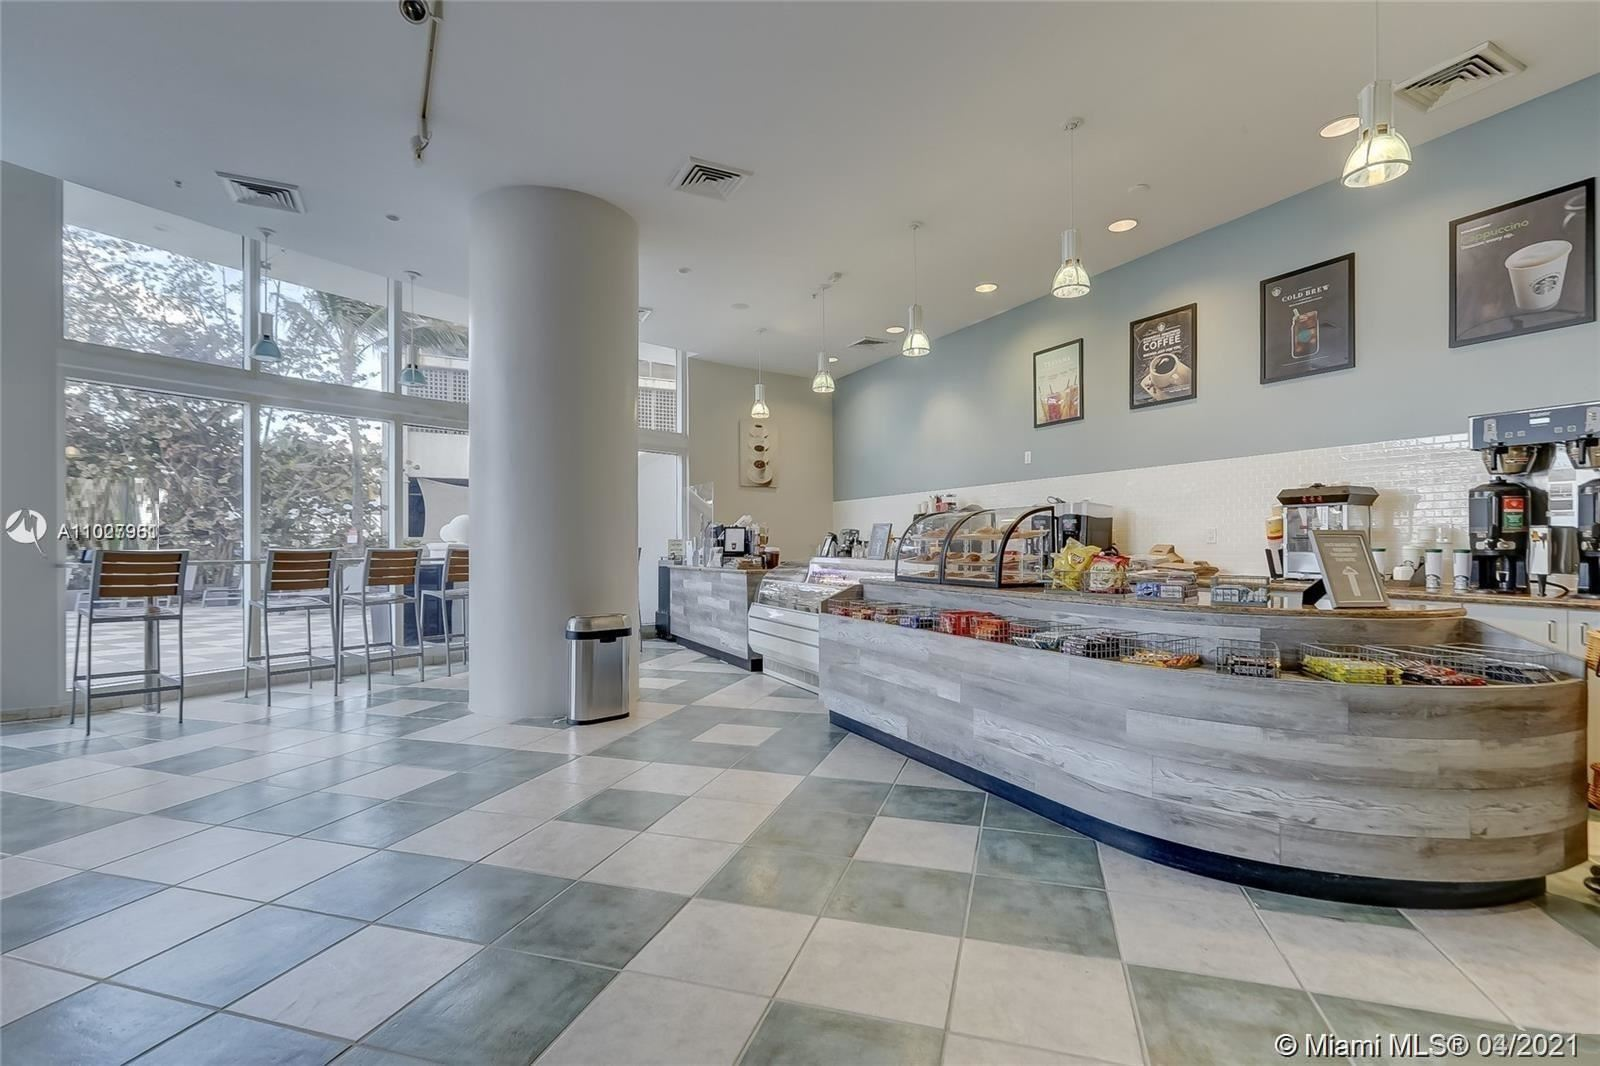 17375 Collins Ave #1905, Sunny Isles, FL 33160 - #: A11027961